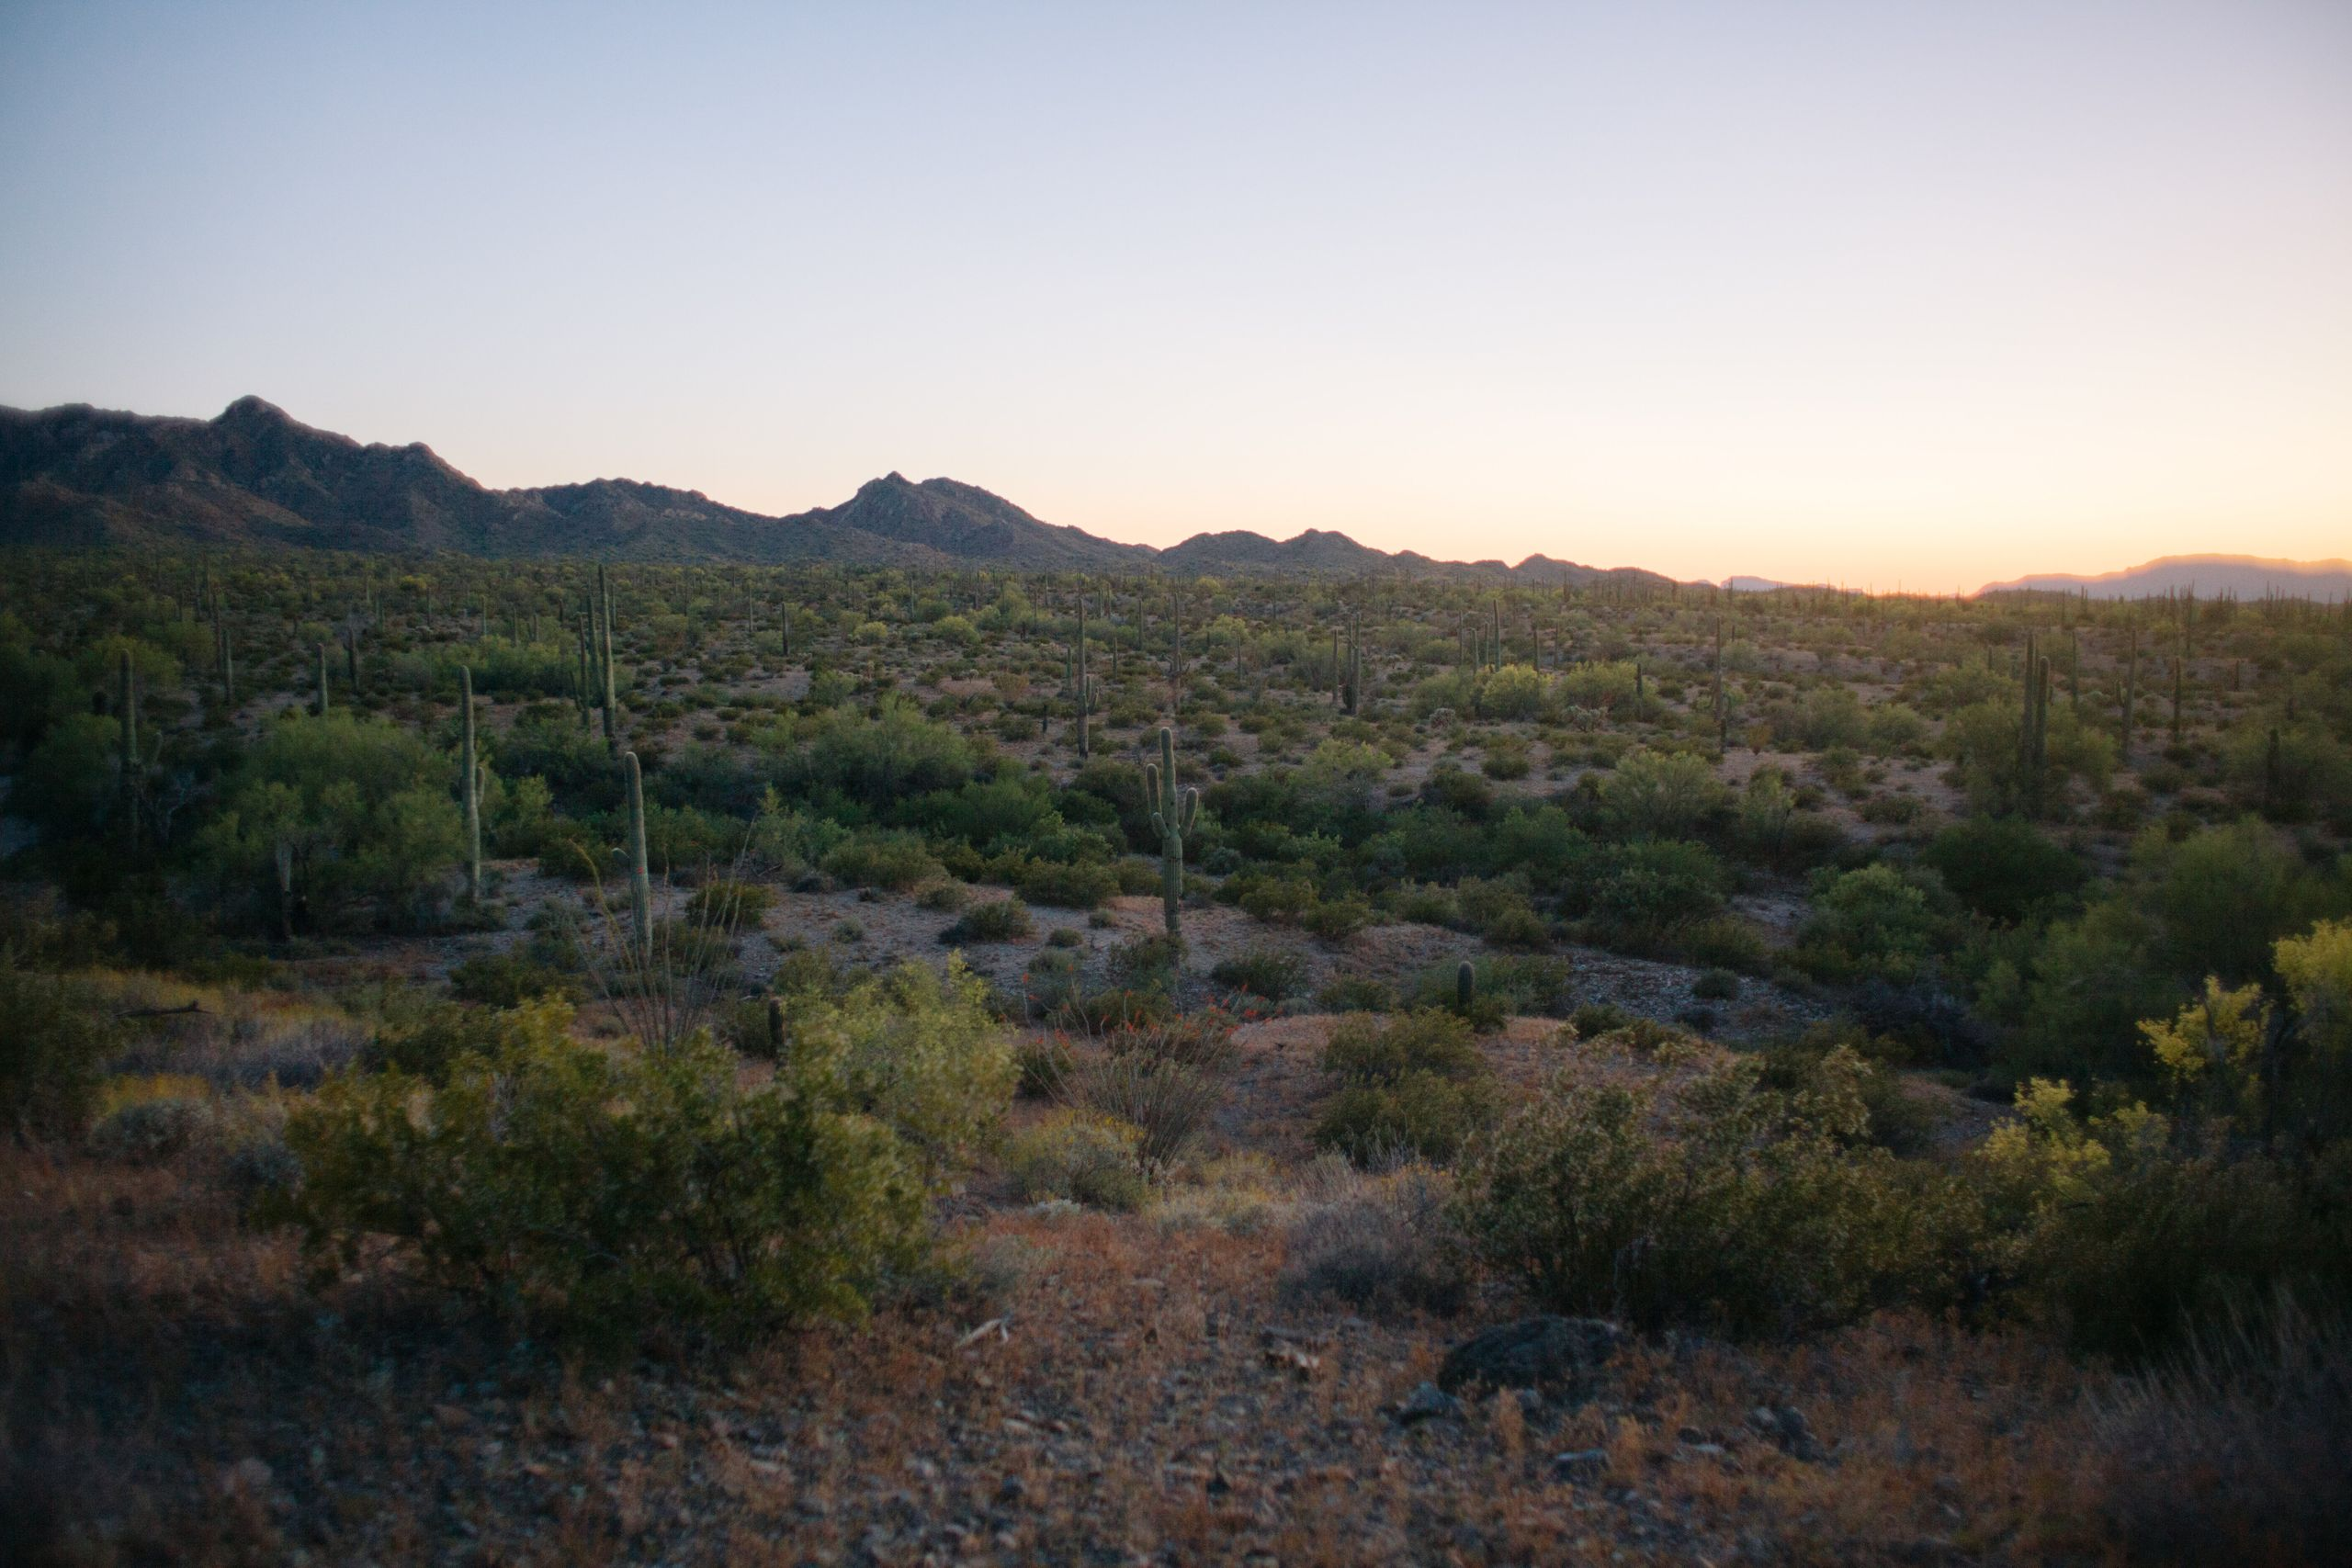 The Cabeza Prieta Wilderness is protected land.